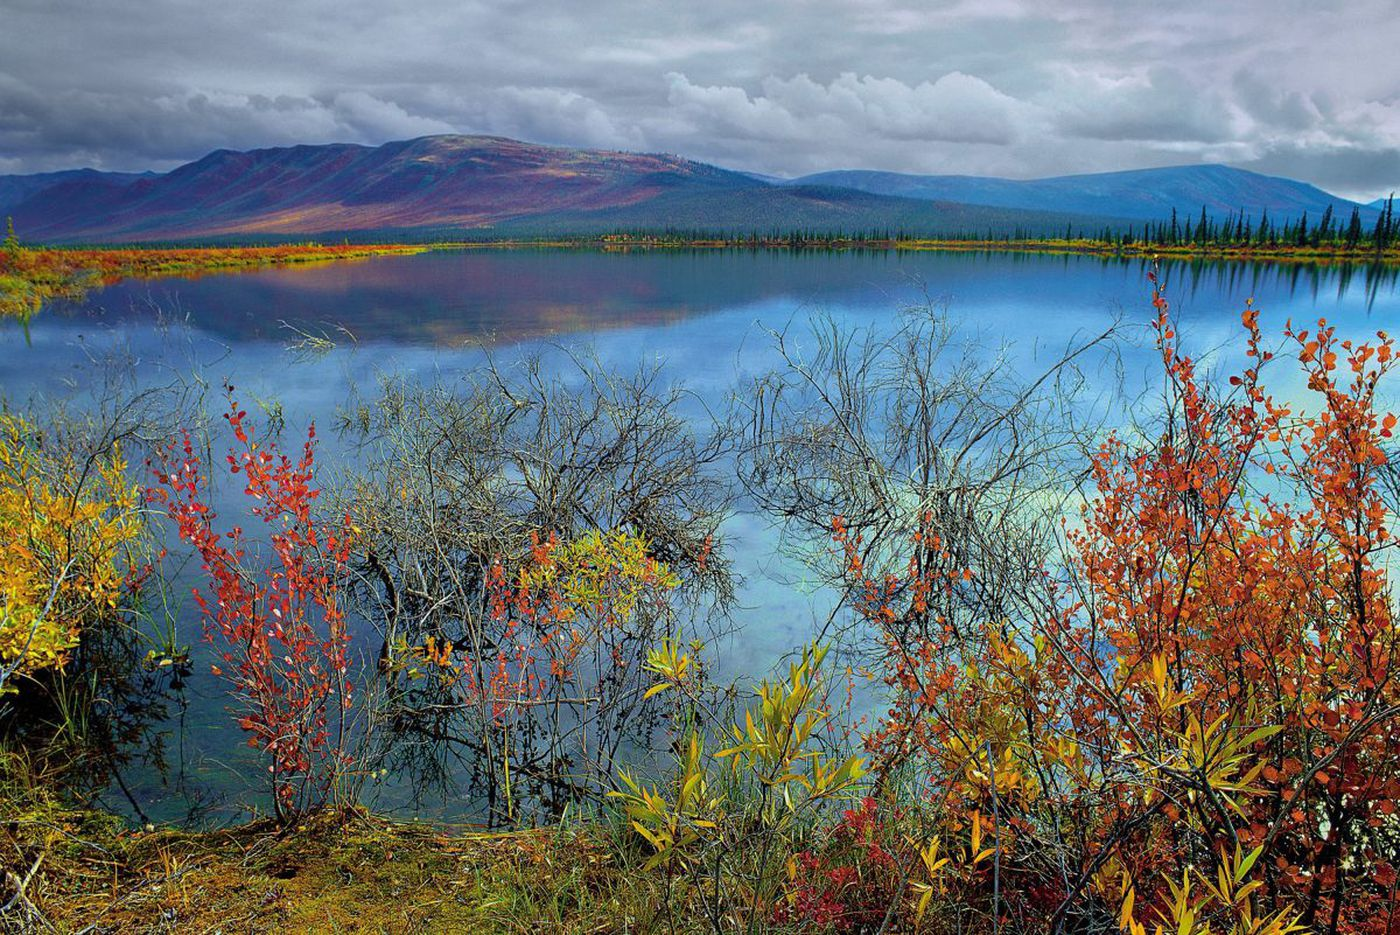 Arctic Refuge drilling: immoral, financially dishonest, and deeply unpopular | Opinion